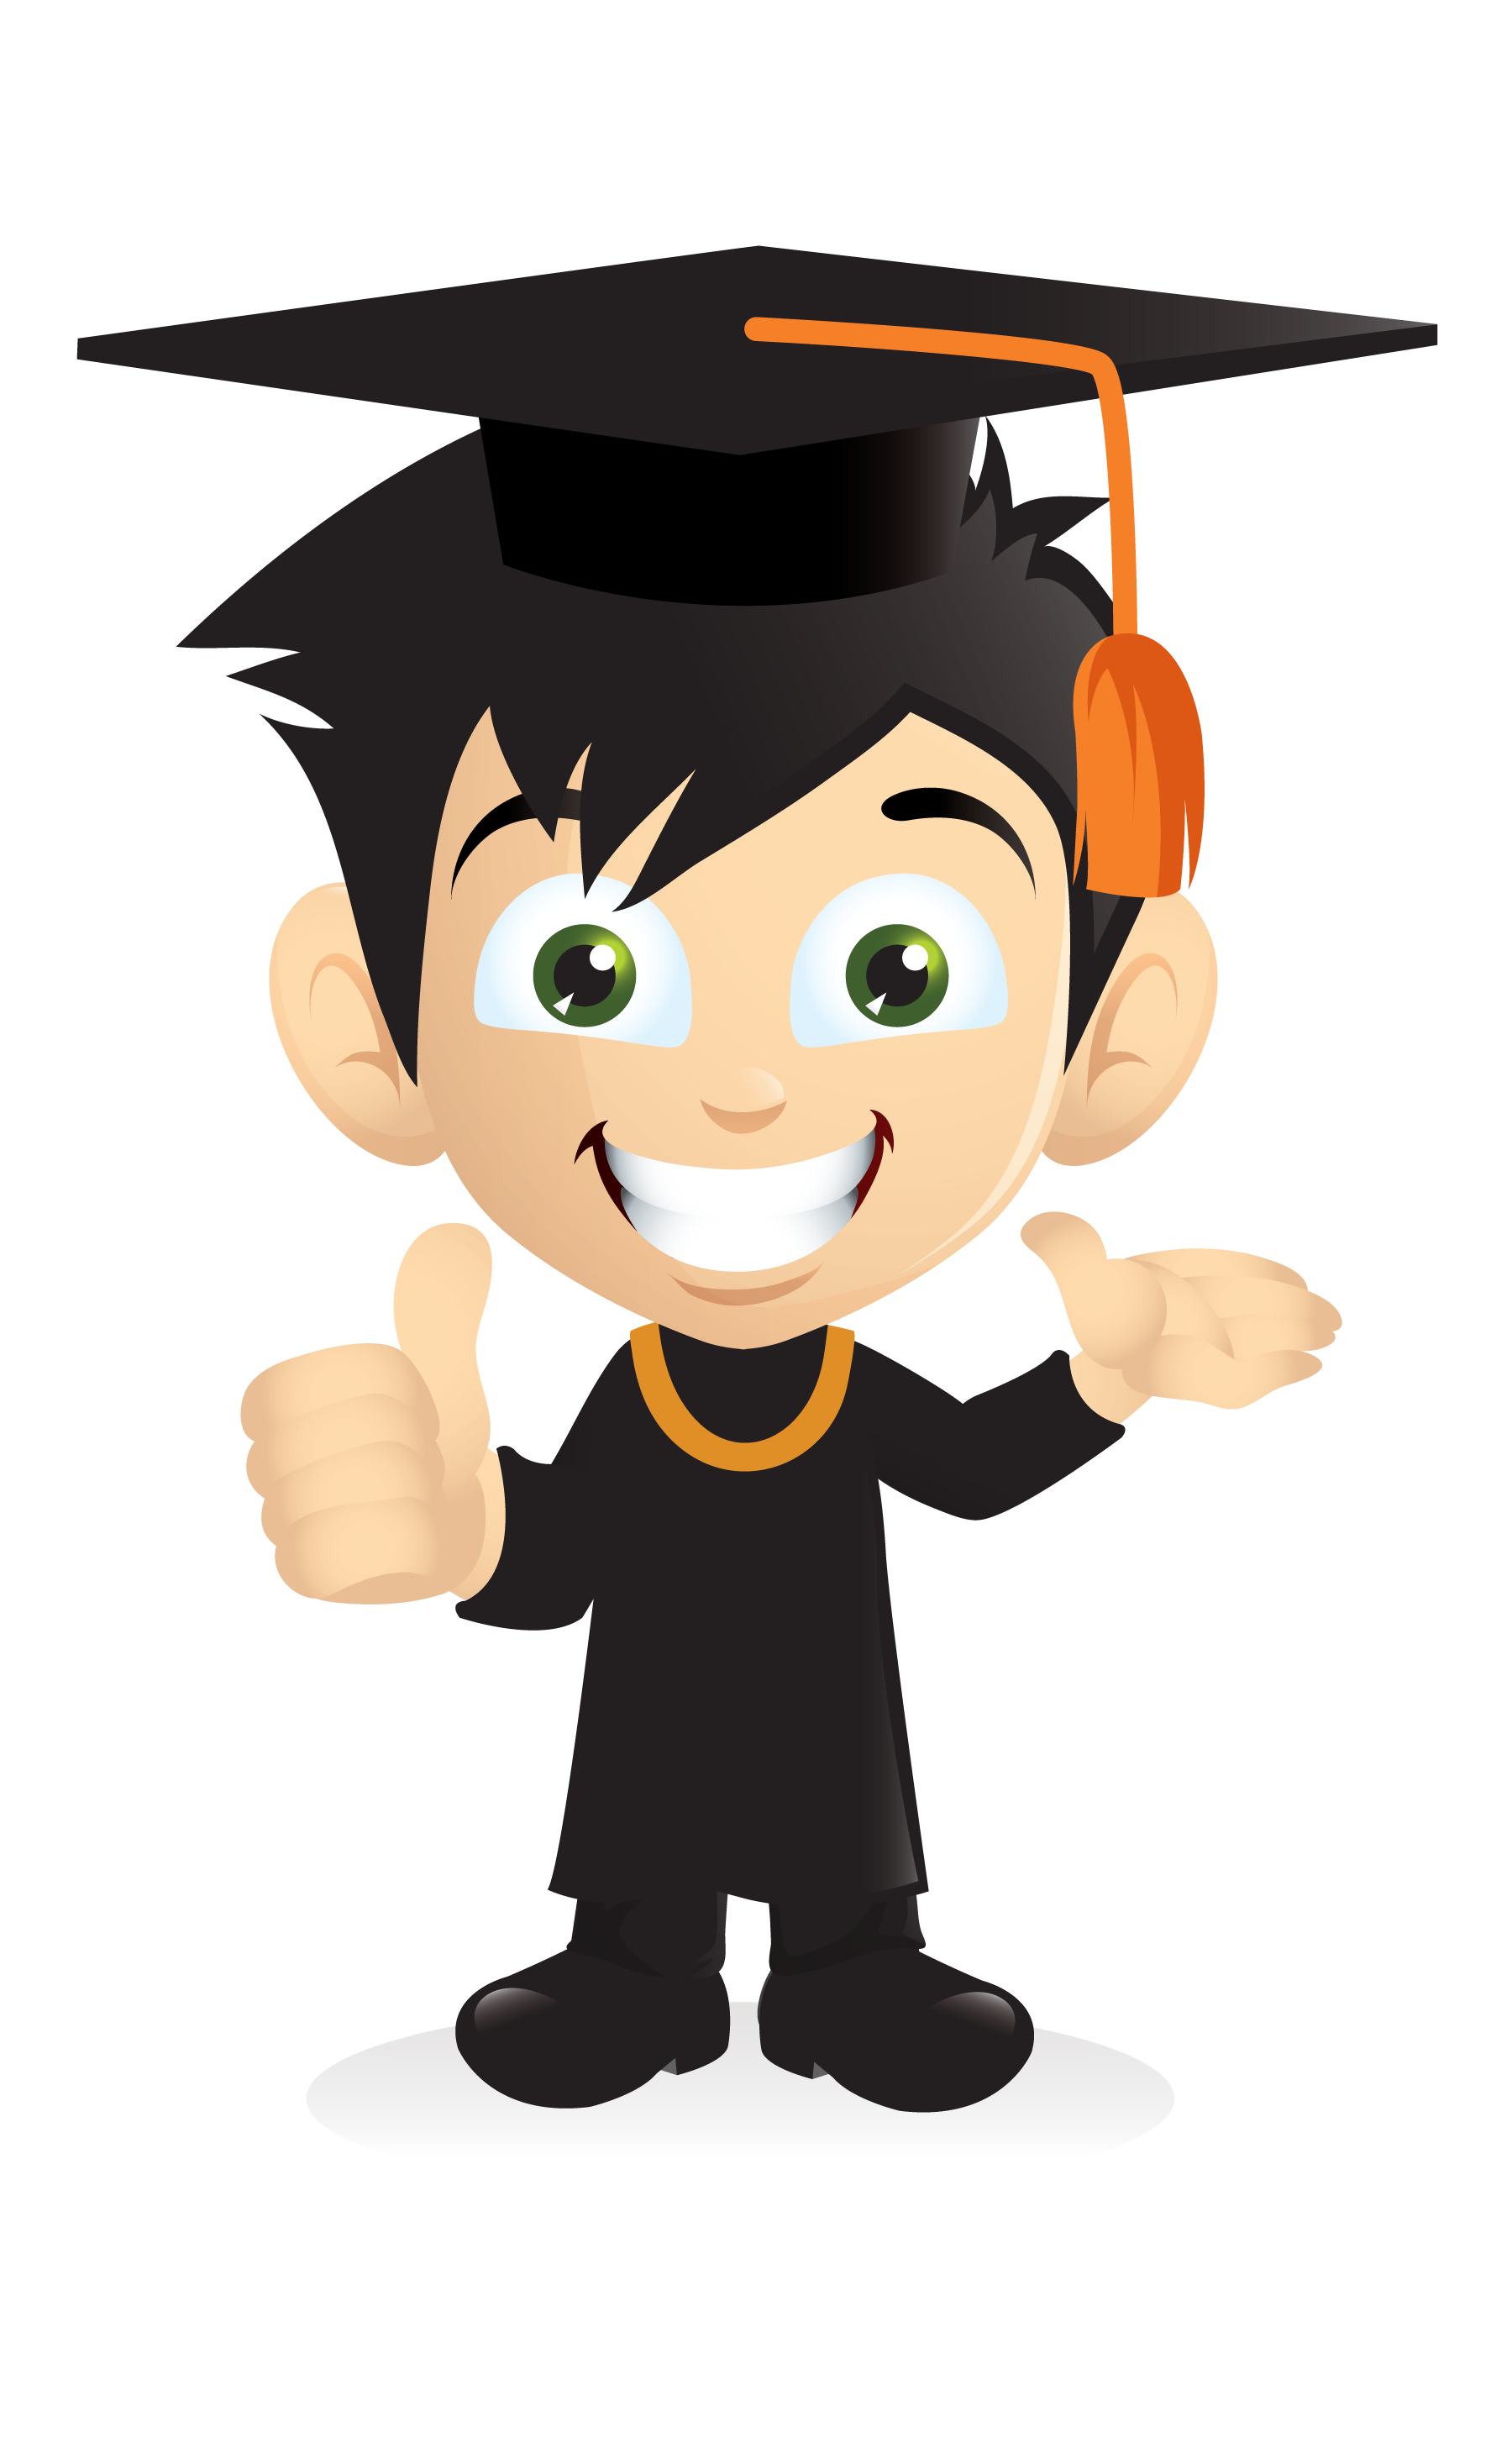 Student cartoon png. Image